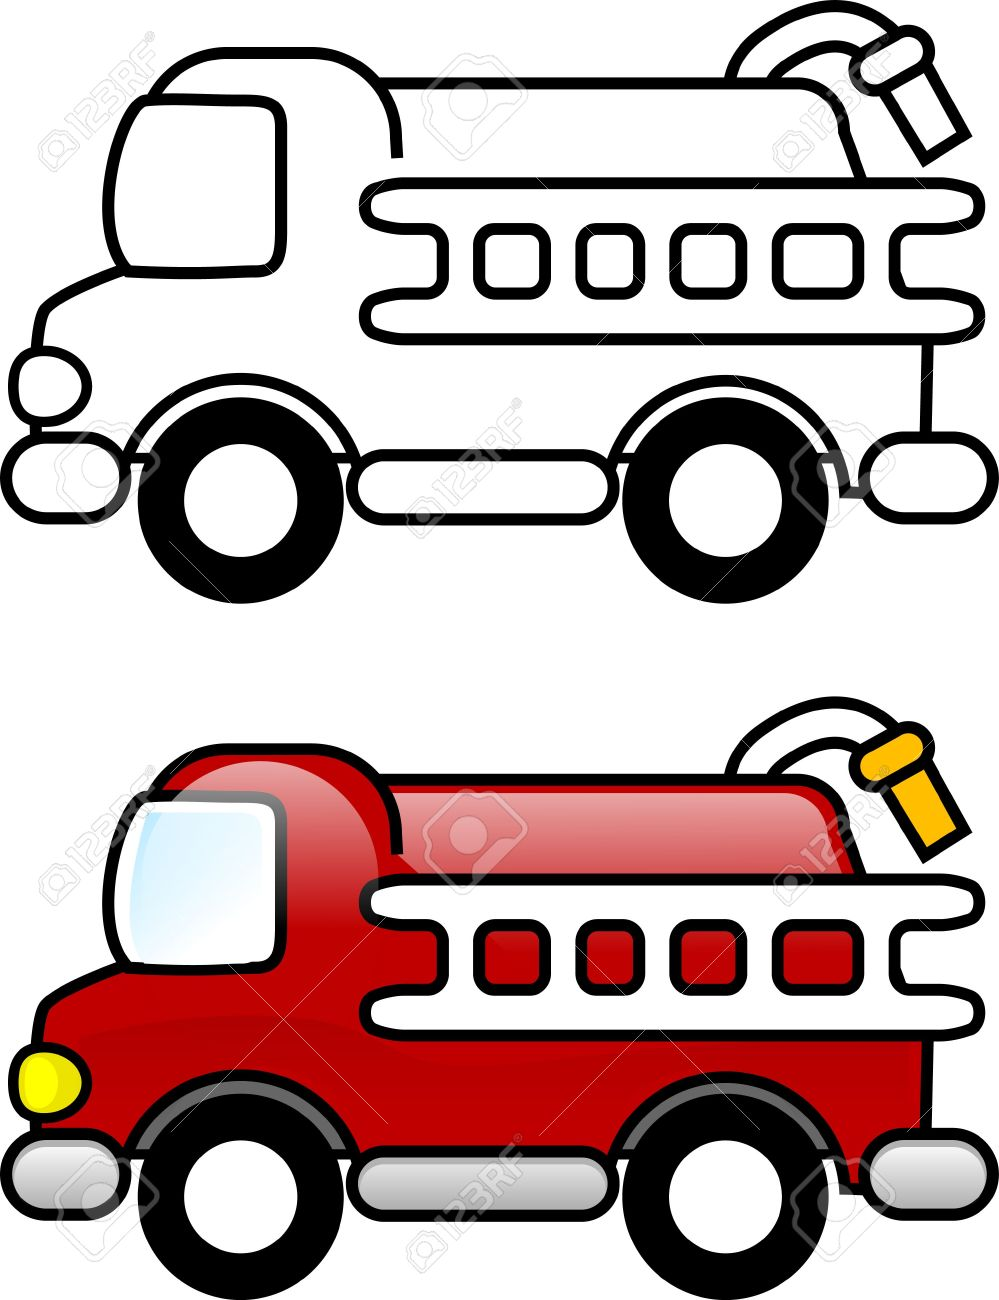 Fire Truck - Printable Coloring Page For Children Or You Can ...